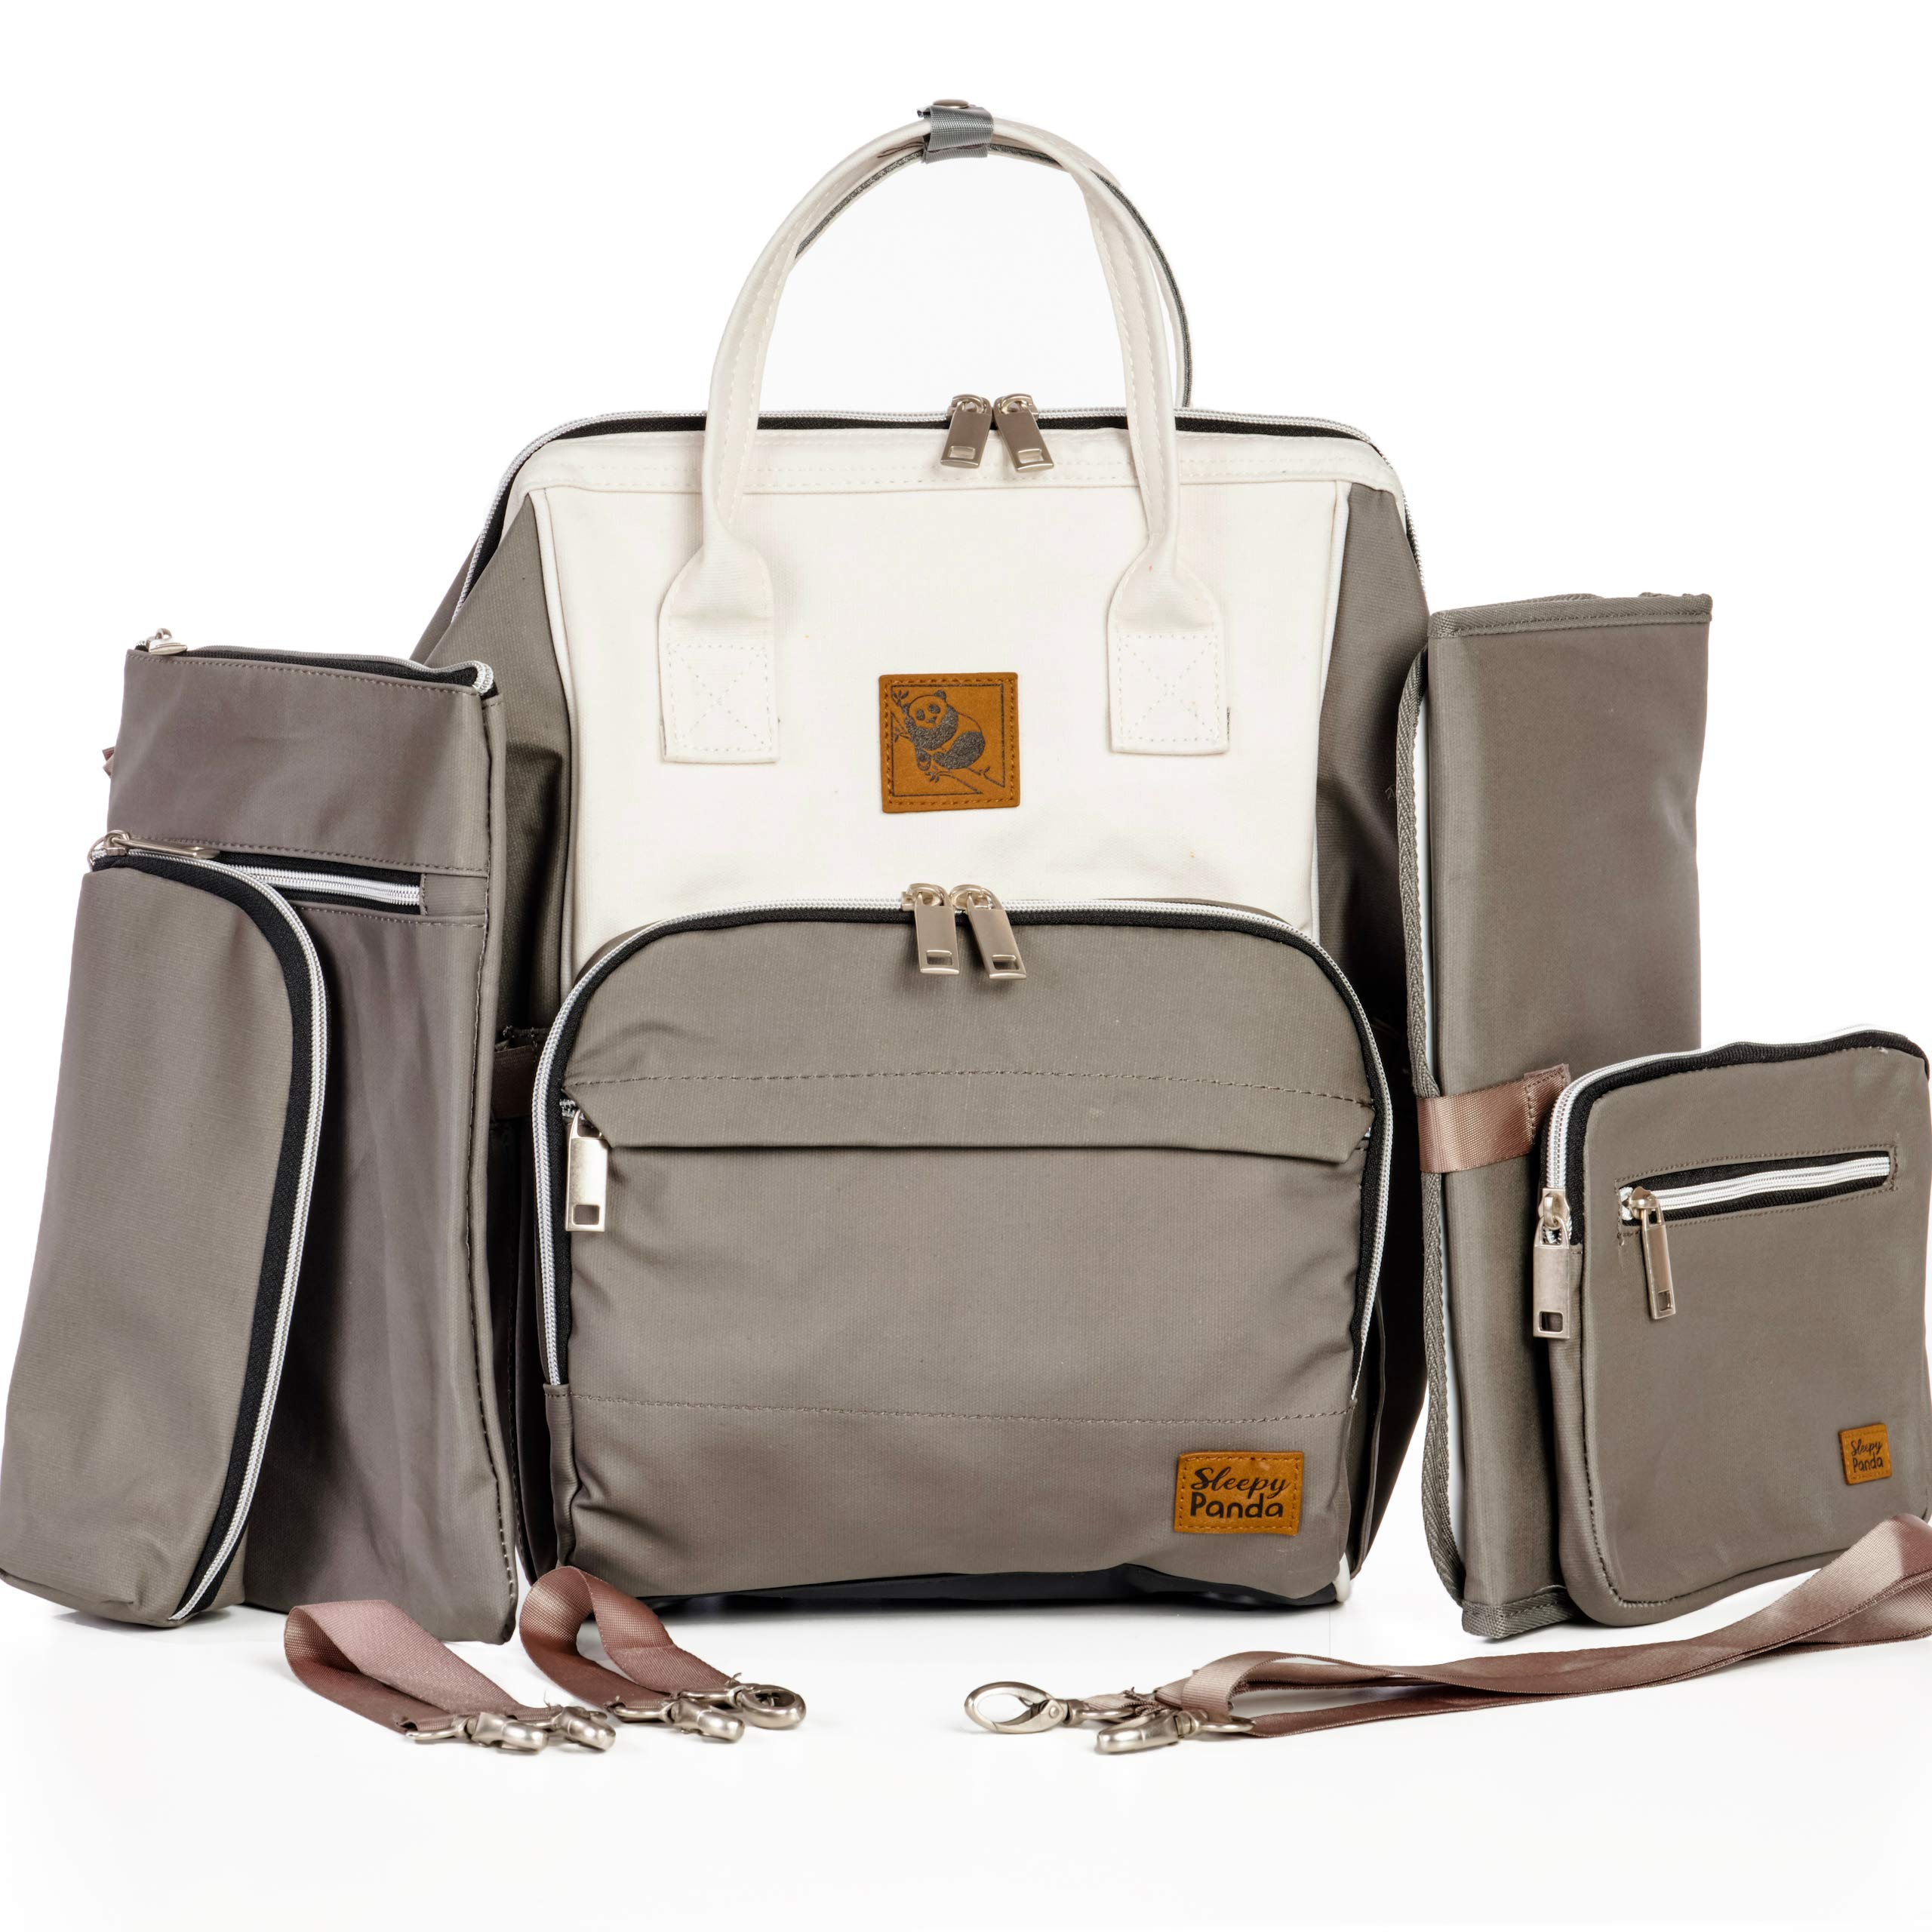 The Lizzie Diaper Bag Backpack with Stroller Straps, Baby Changing Pad & USB Hub, Neutral